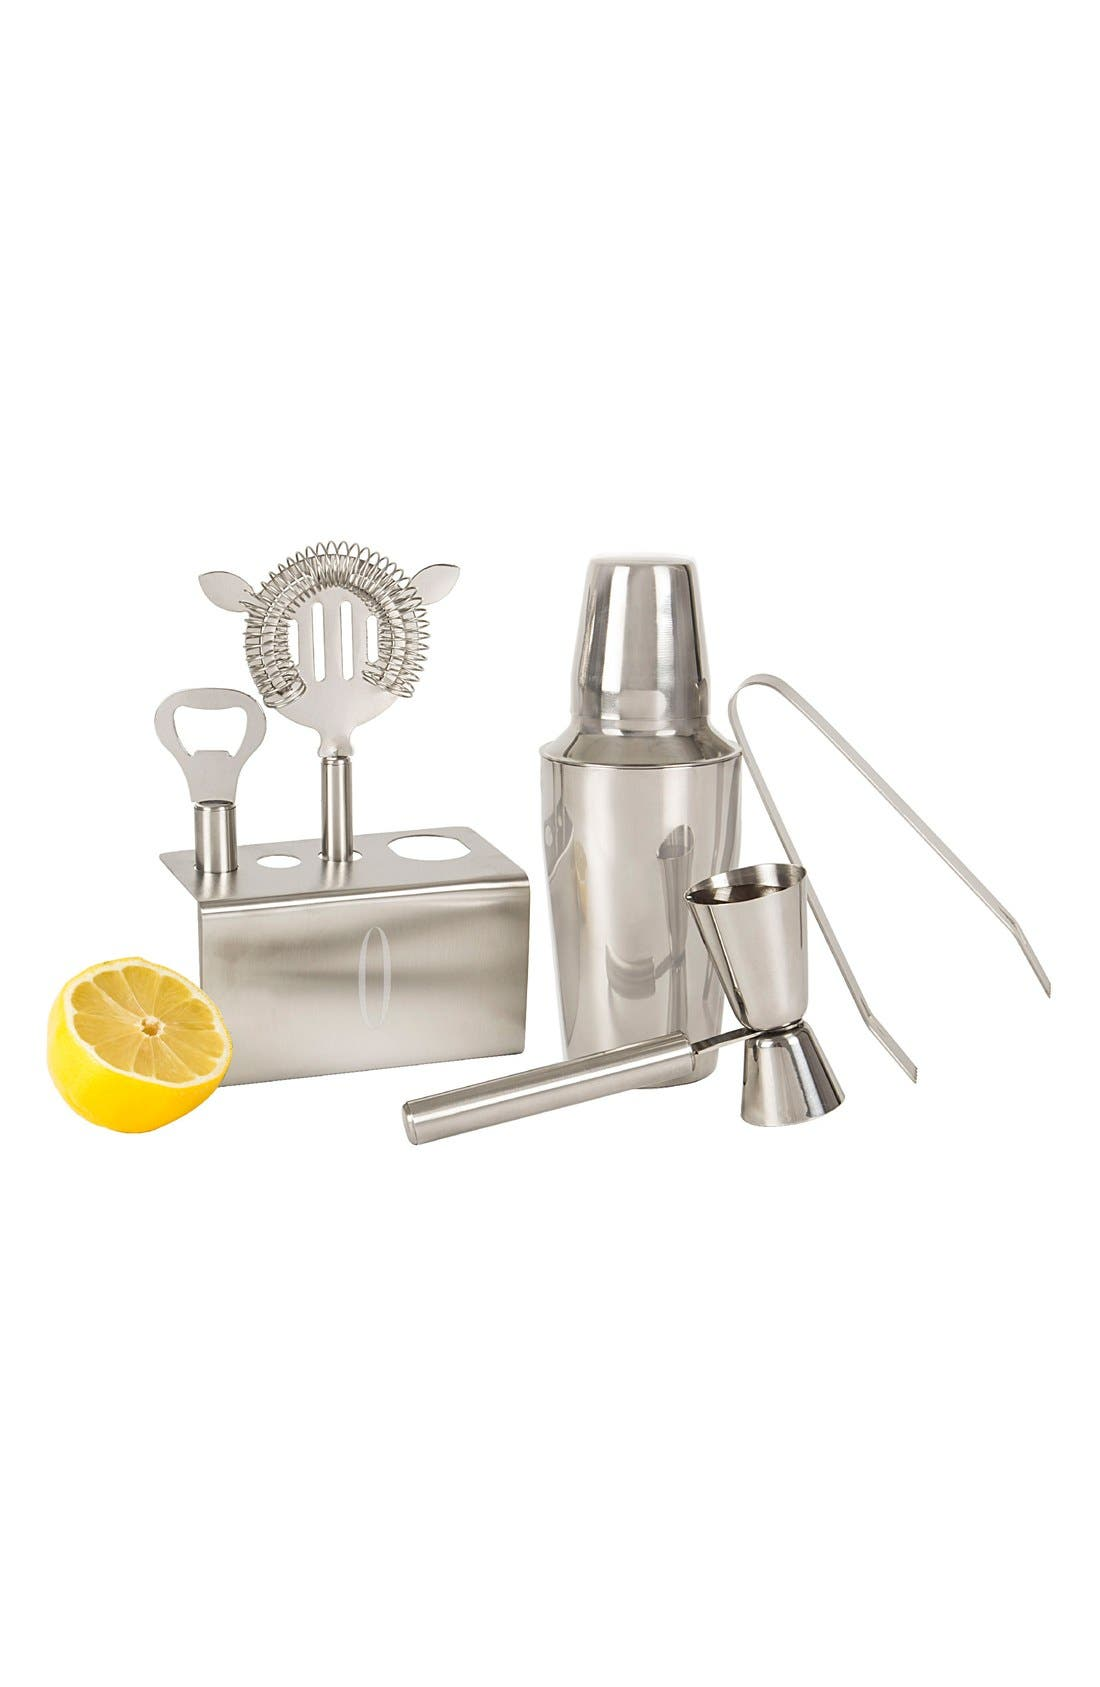 Cathy's Concepts Monogram Stainless Steel Mixology Set